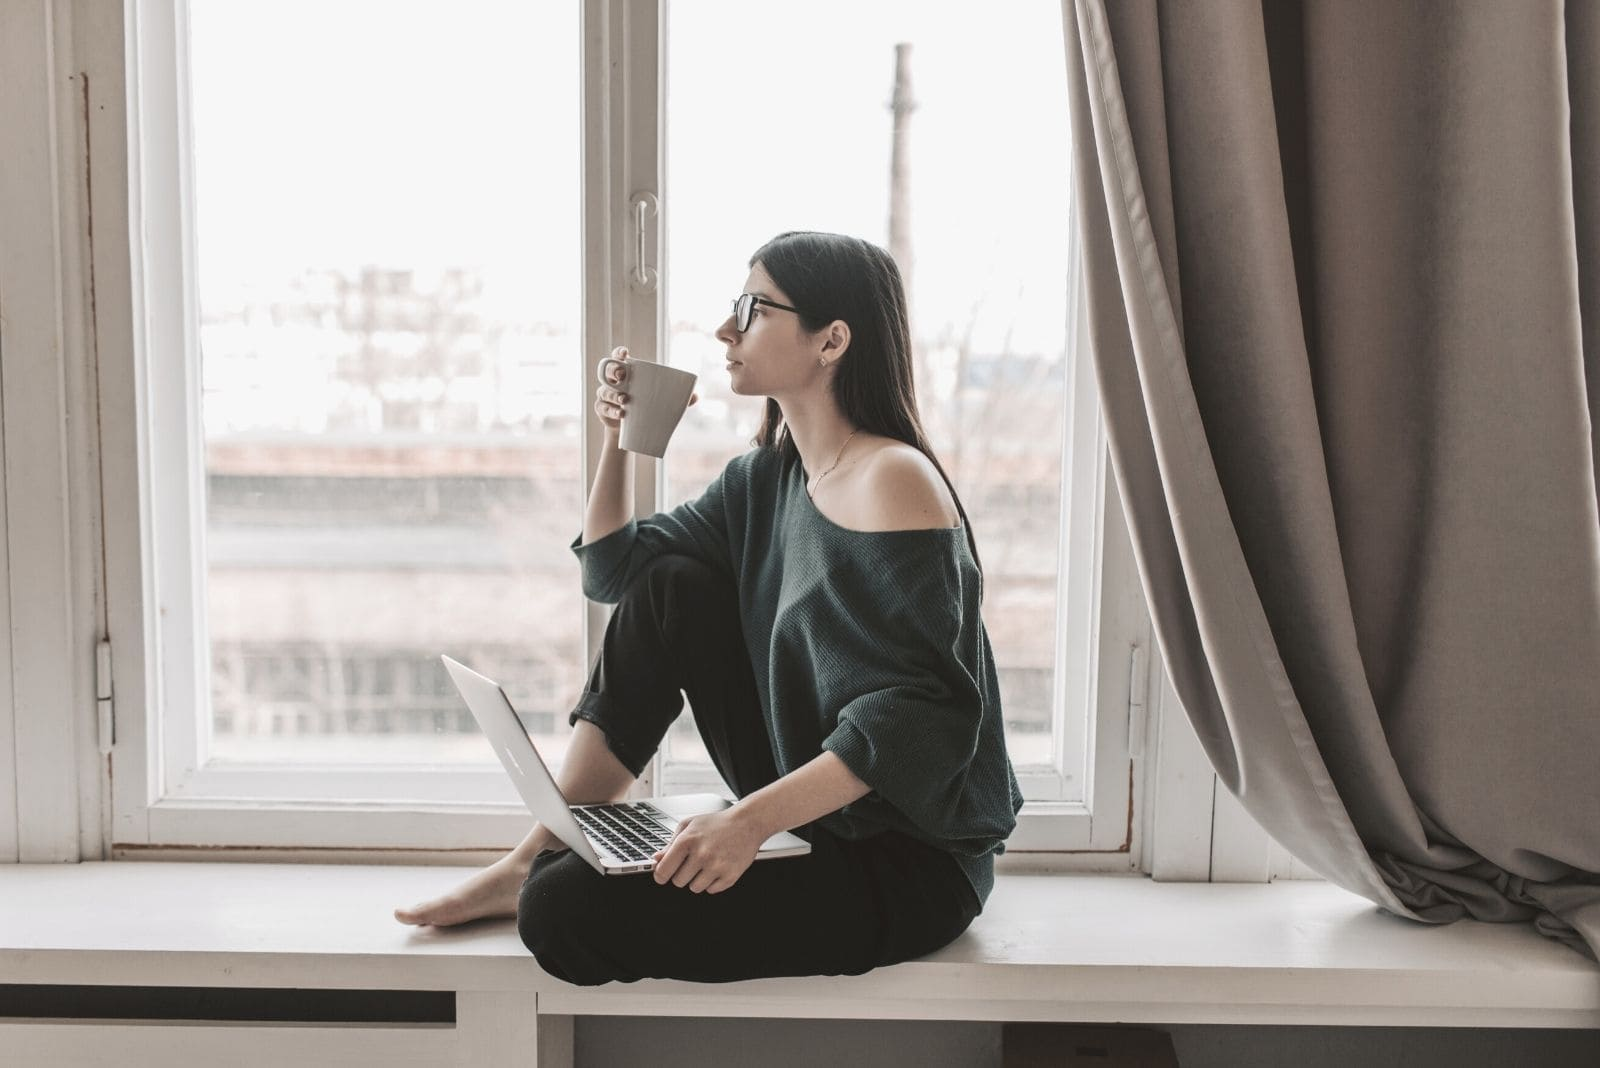 pensive woman with laptop drinking hot beverage sitting on the window sill